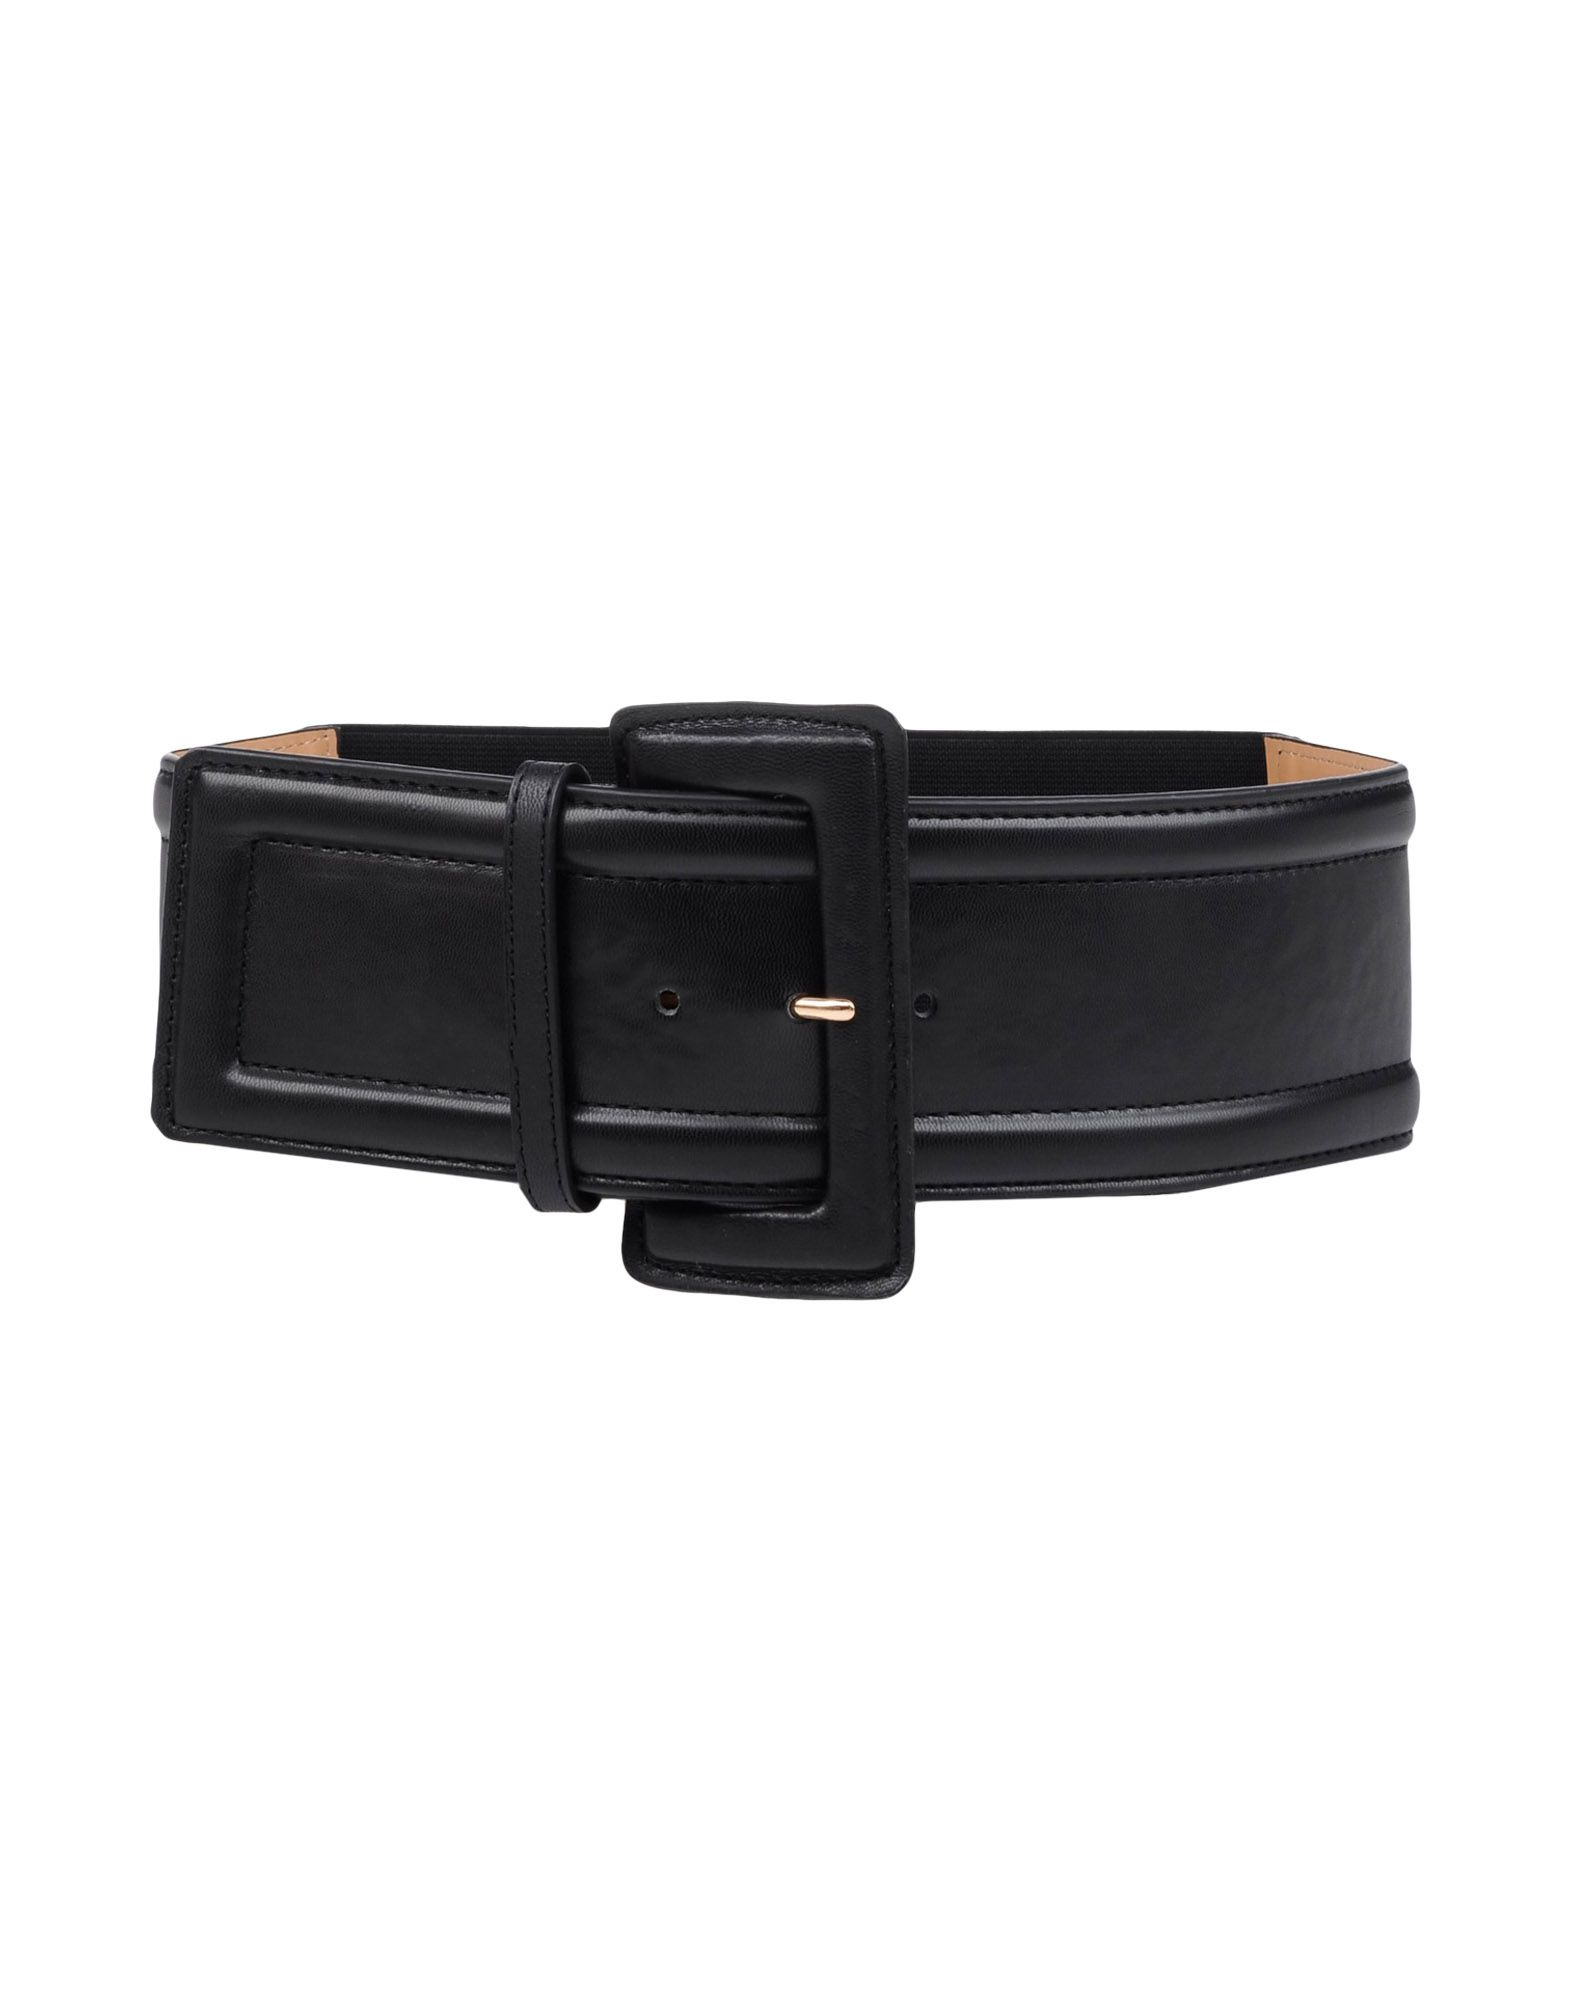 HOPE COLLECTION Belts - Item 46545697